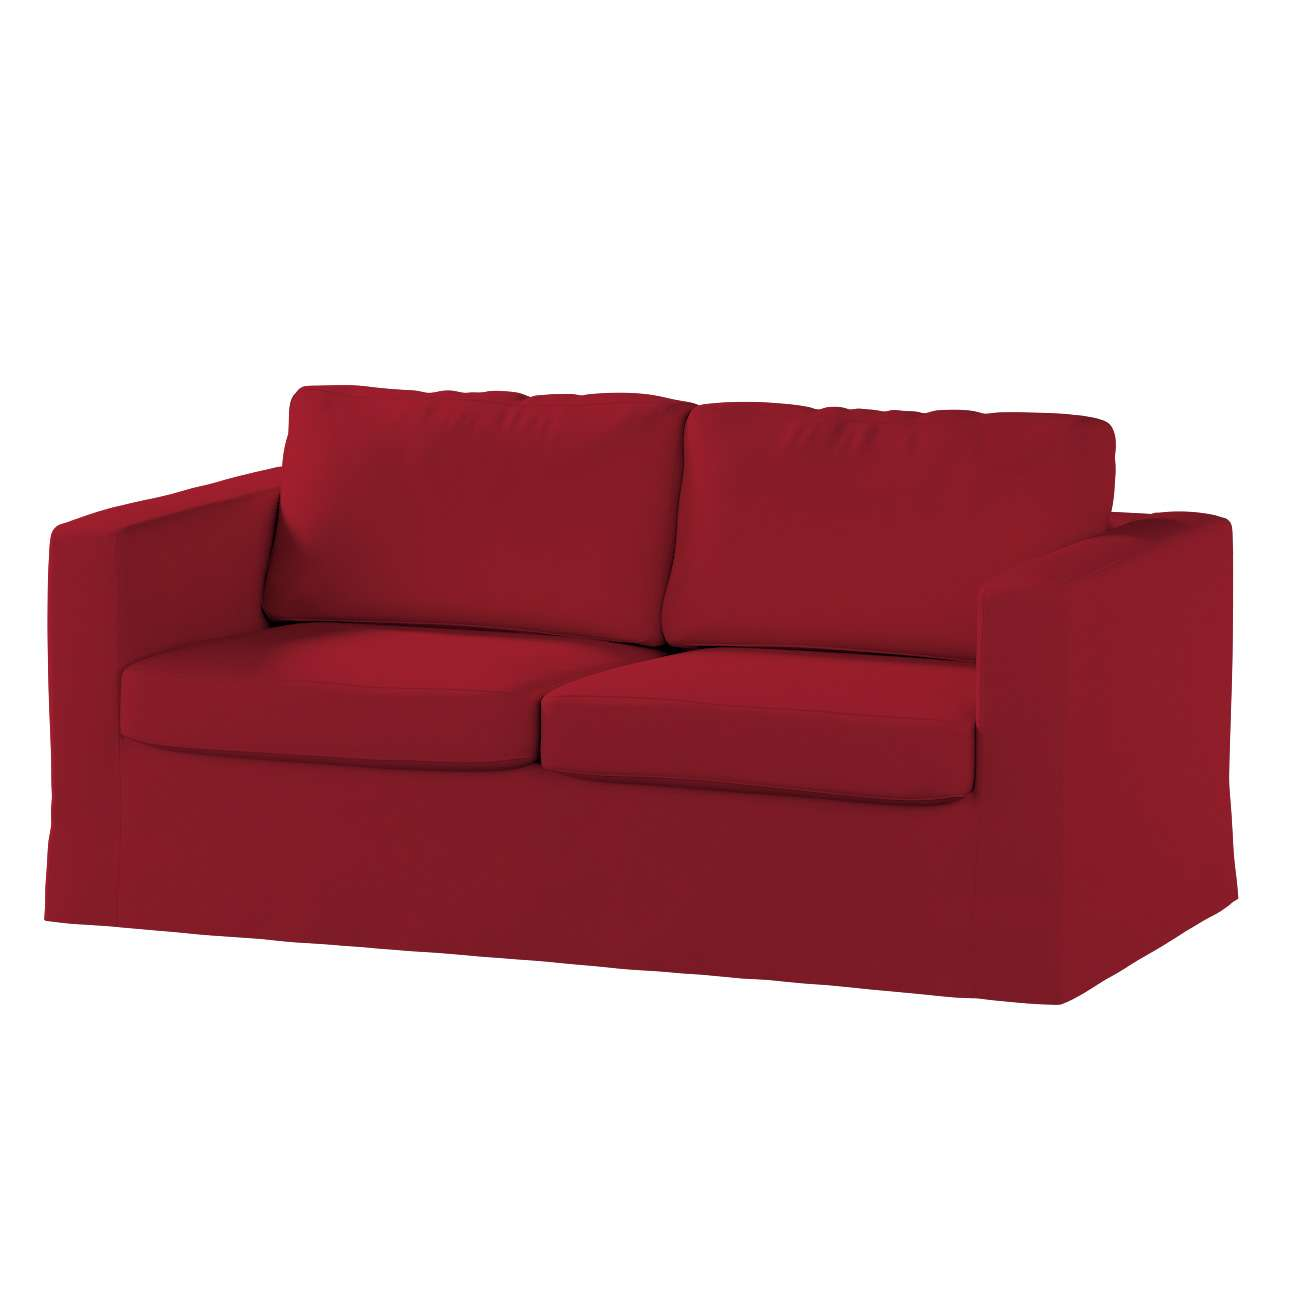 Floor length Karlstad 2-seater sofa cover in collection Chenille, fabric: 702-24